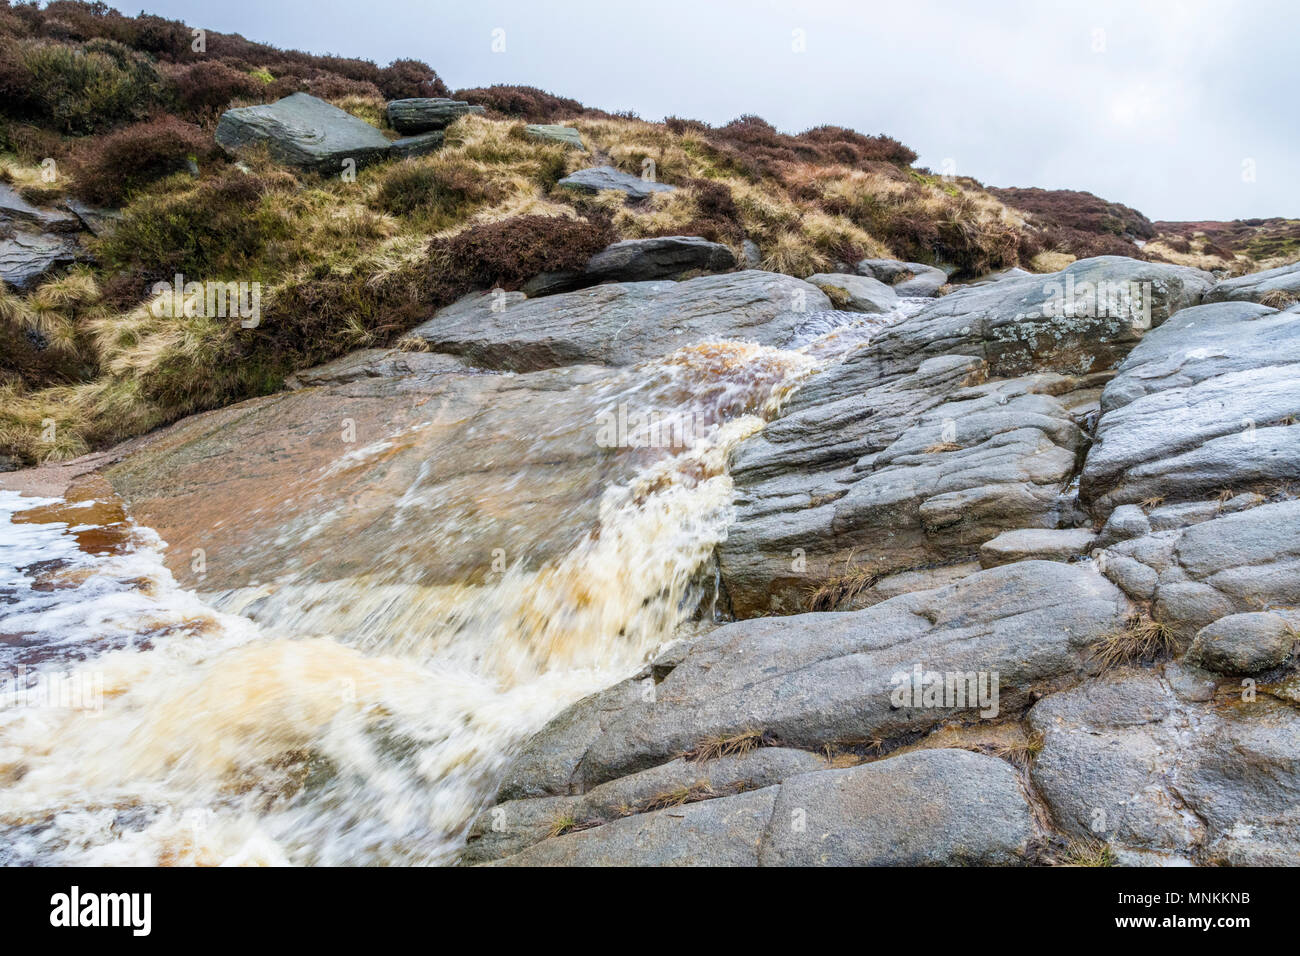 Fast flowing stream containing peat rushing over rocks on Kinder Scout moorland, Derbyshire, Peak District National Park, England, UK - Stock Image